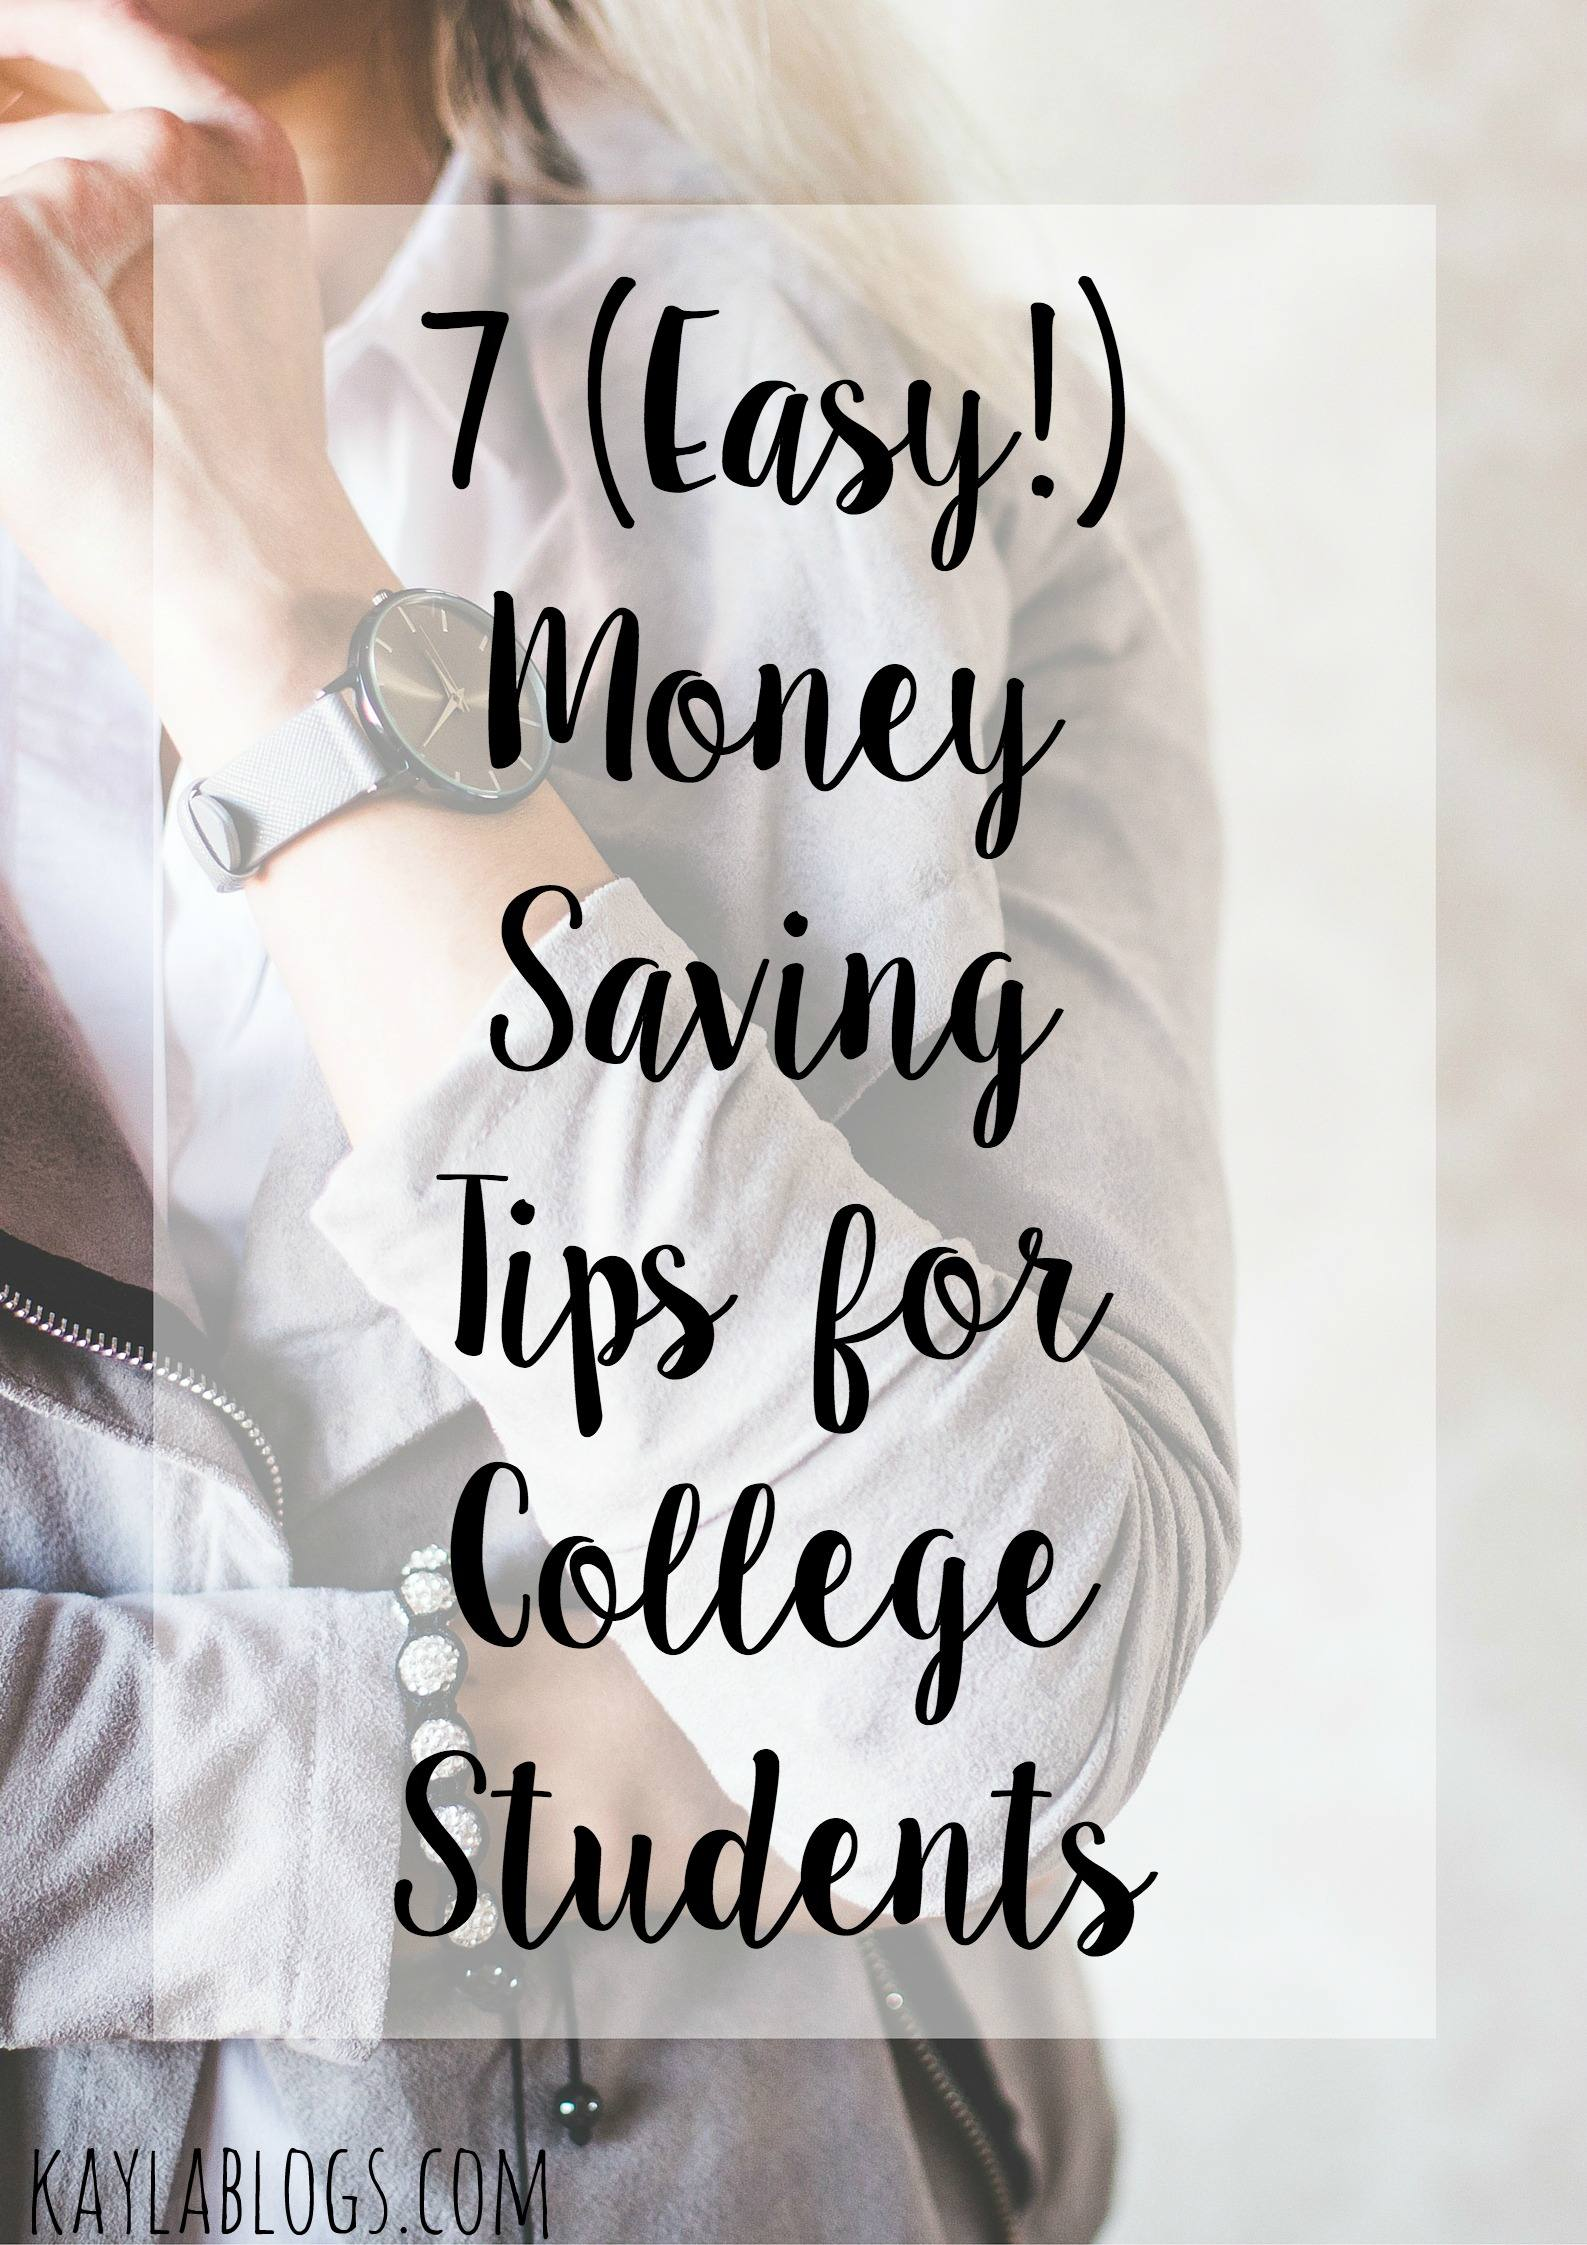 7 (Easy!) Money Saving Tips for College Students